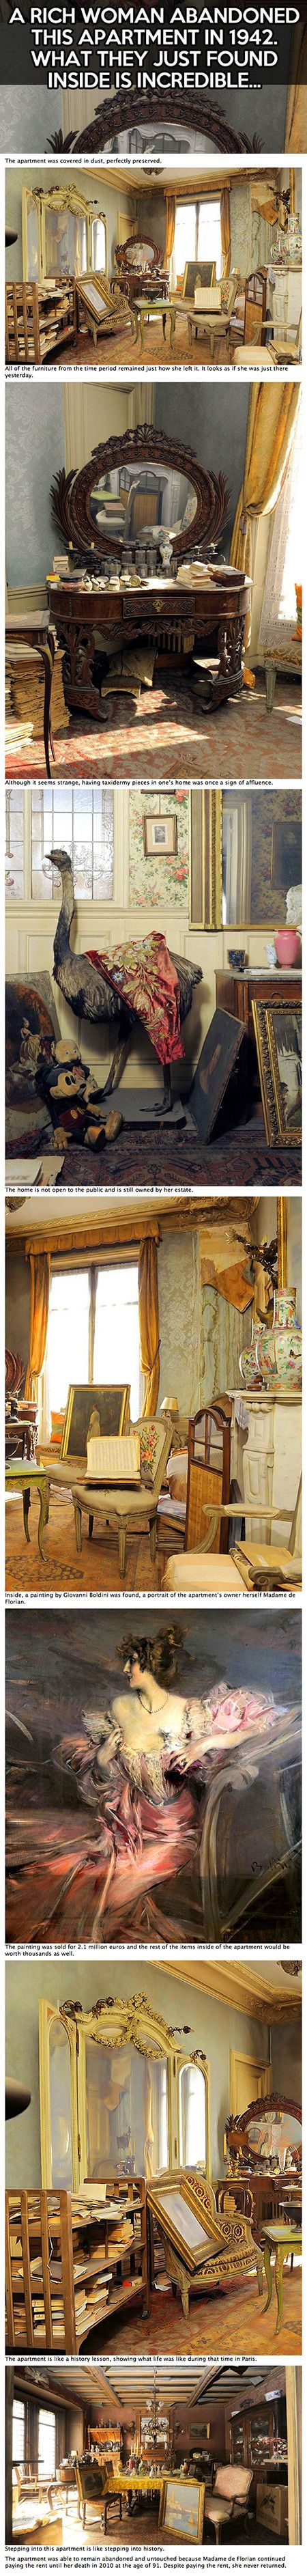 Wealthy Woman Abandons Parisian Apartment in 1942, This is What They Found…